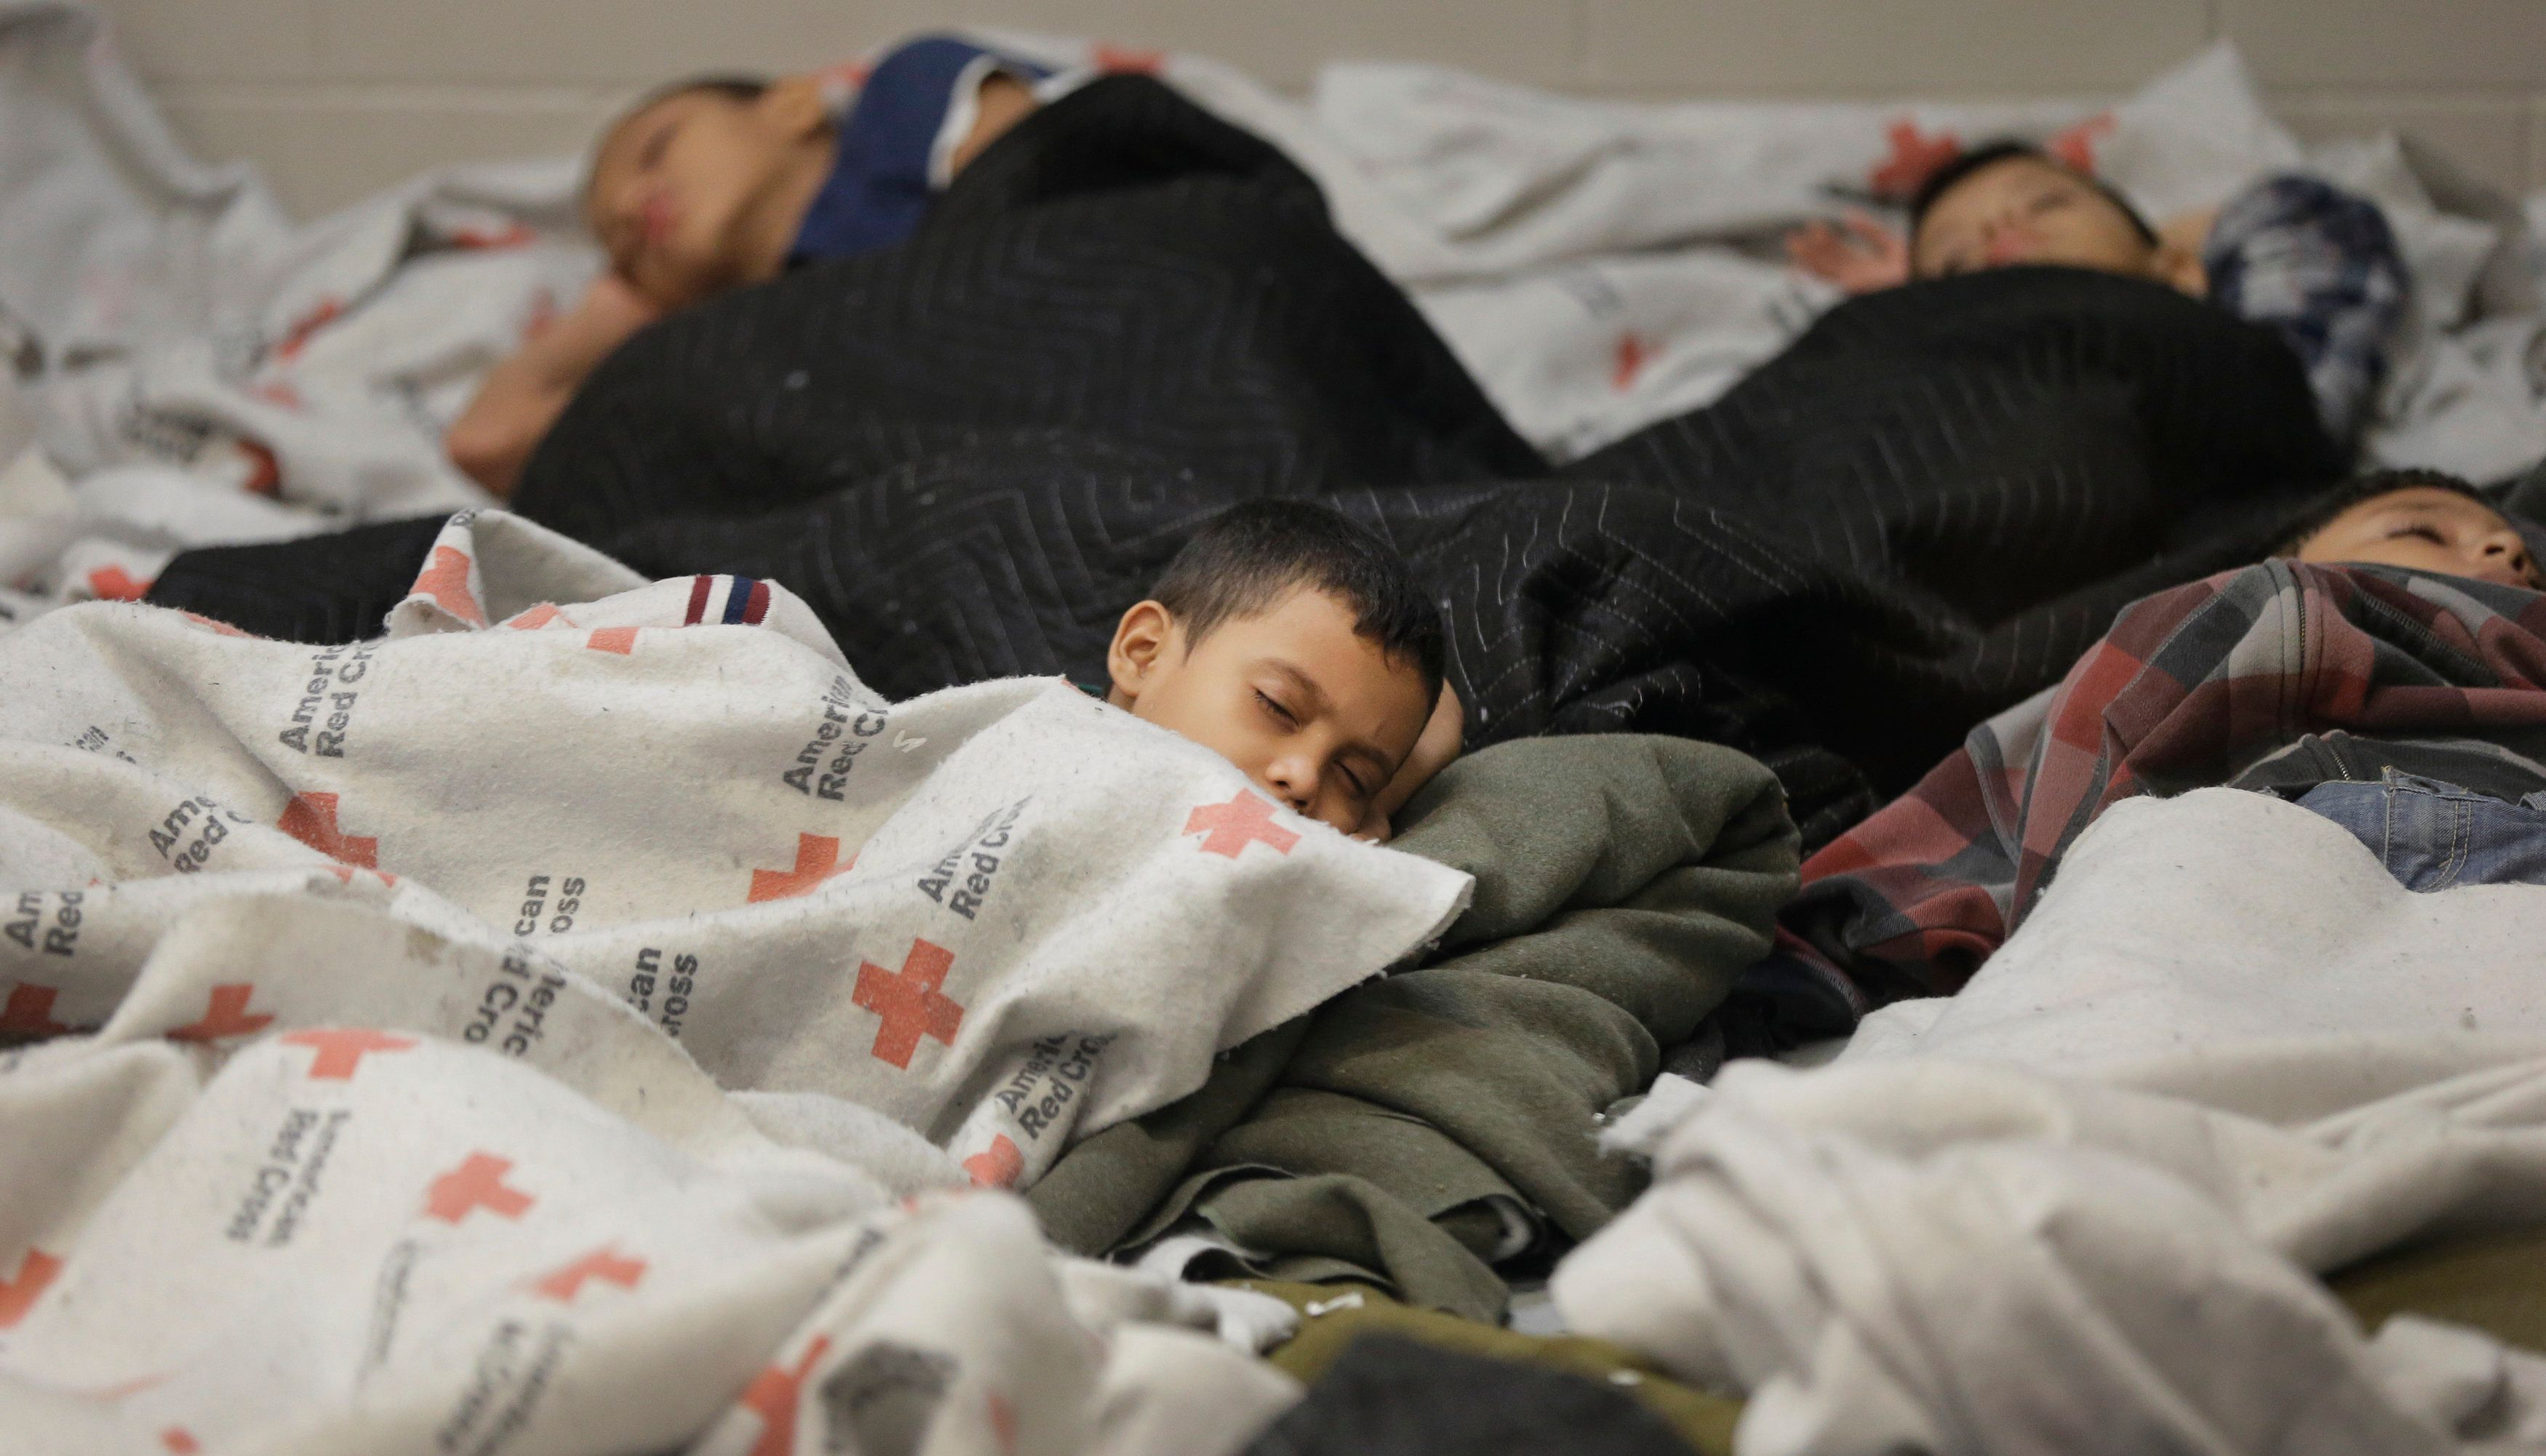 Detainees sleep in a holding cell at a U.S. Customs and Border Protection processing facility, in Brownsville, Texas June 18, 2014. CPB provided media tours June 18 of two locations in Brownsville and Nogales, Arizona that have been central to processing the more than 47,000 unaccompanied children who have entered the country illegally since Oct. 1.  REUTERS/Eric Gay/Pool  (UNITED STATES - Tags: CRIME LAW POLITICS SOCIETY)